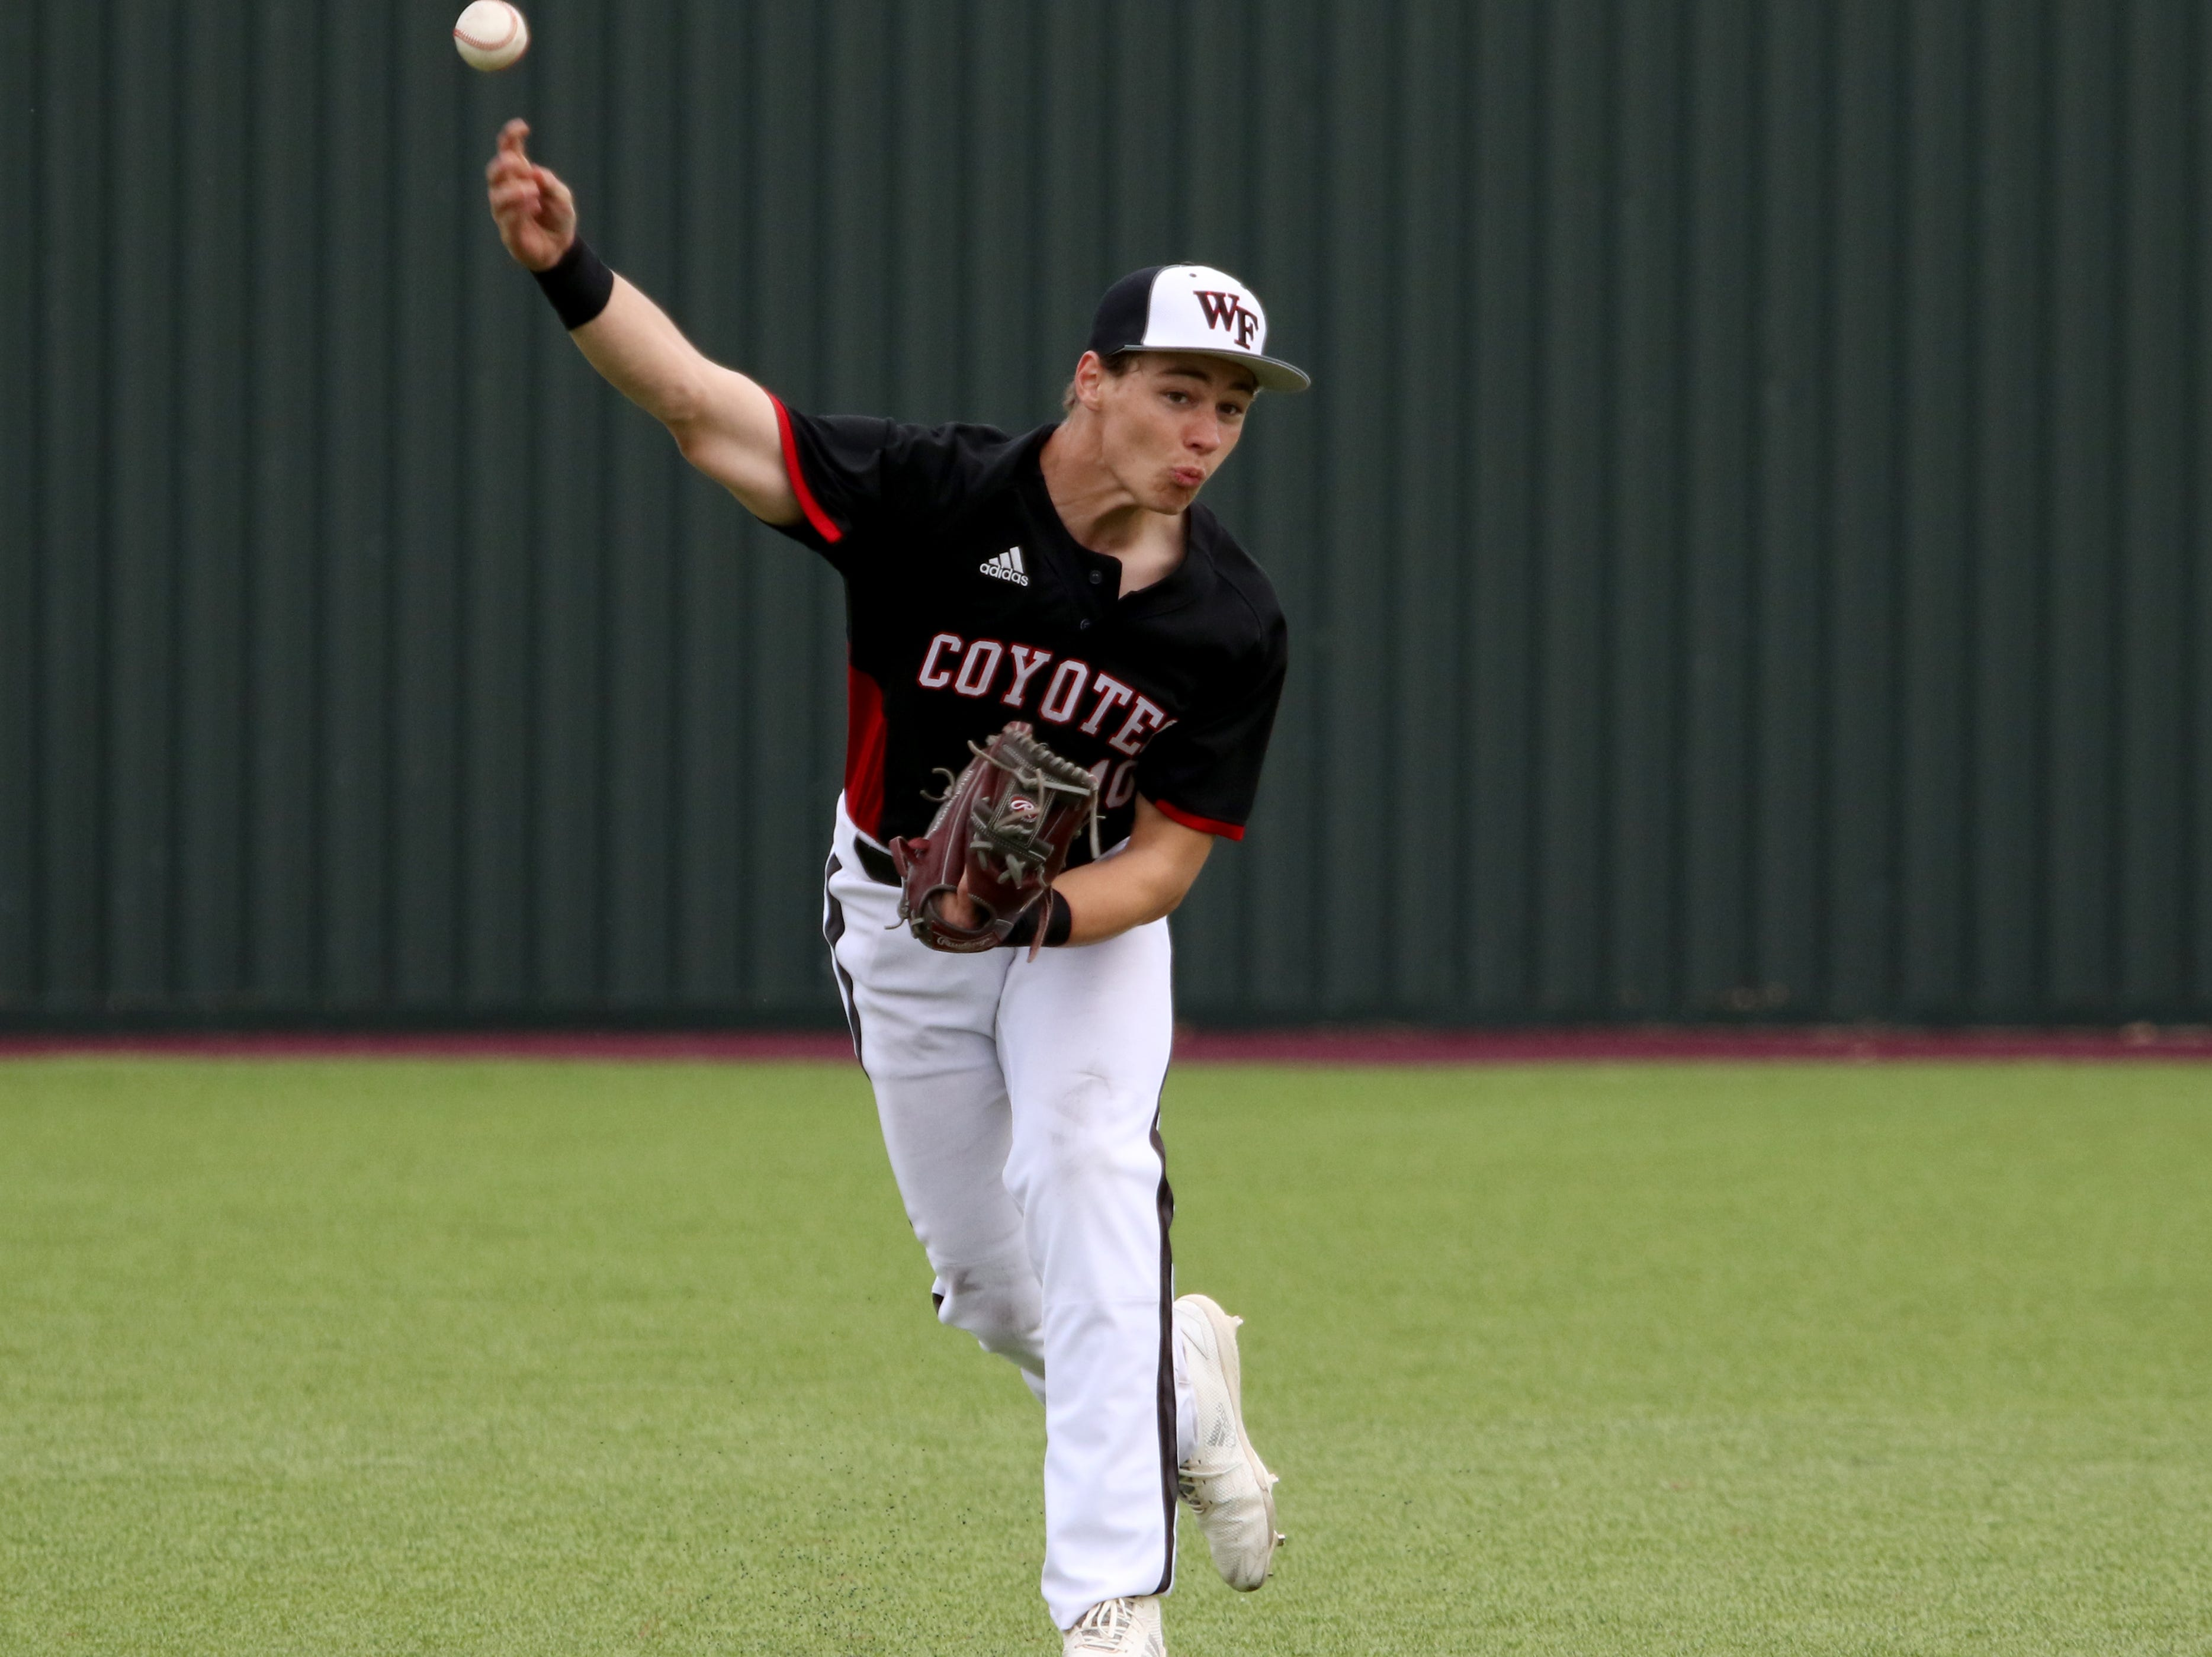 Wichita Falls High School's Zane Leonard throws to first in the game against Holliday Friday, March 8, 2019, in Bowie for the Walker Stallcup Tournament.